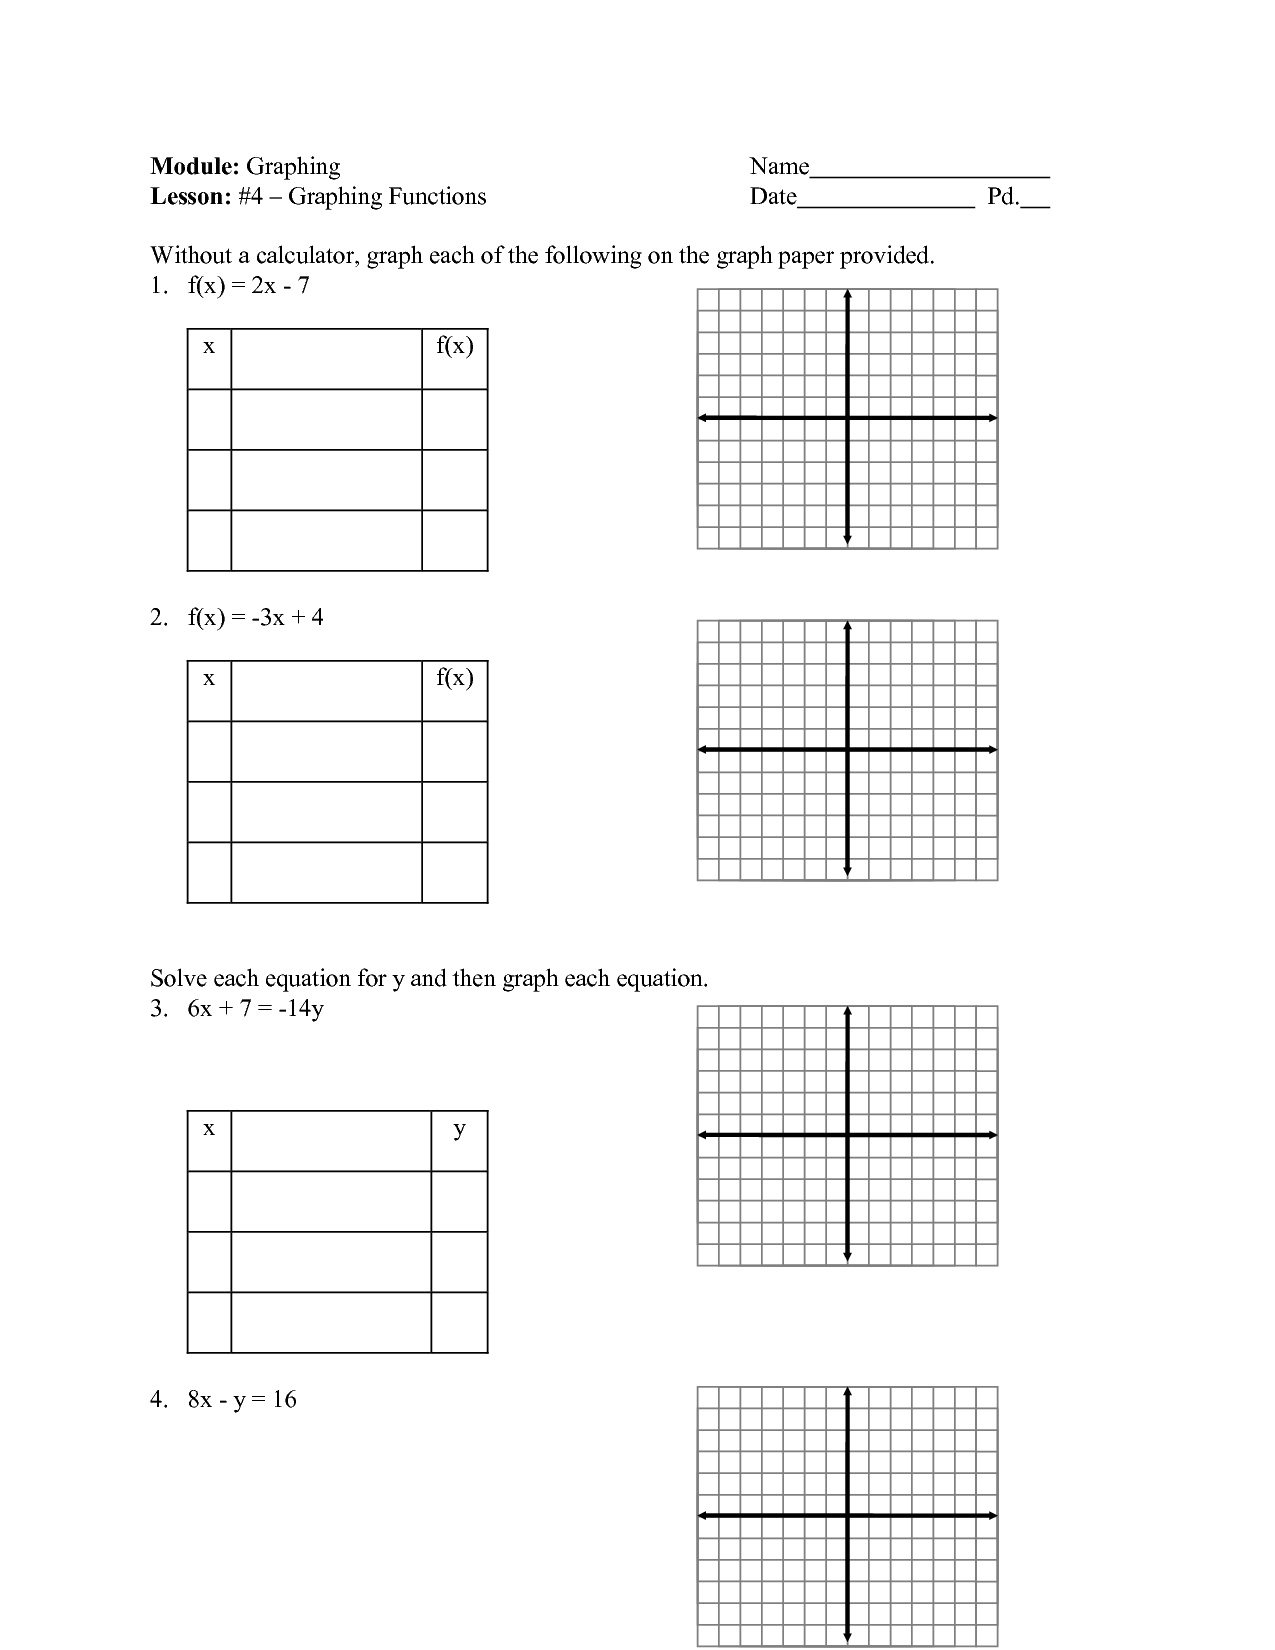 Blank Quadrant Graphing Worksheet